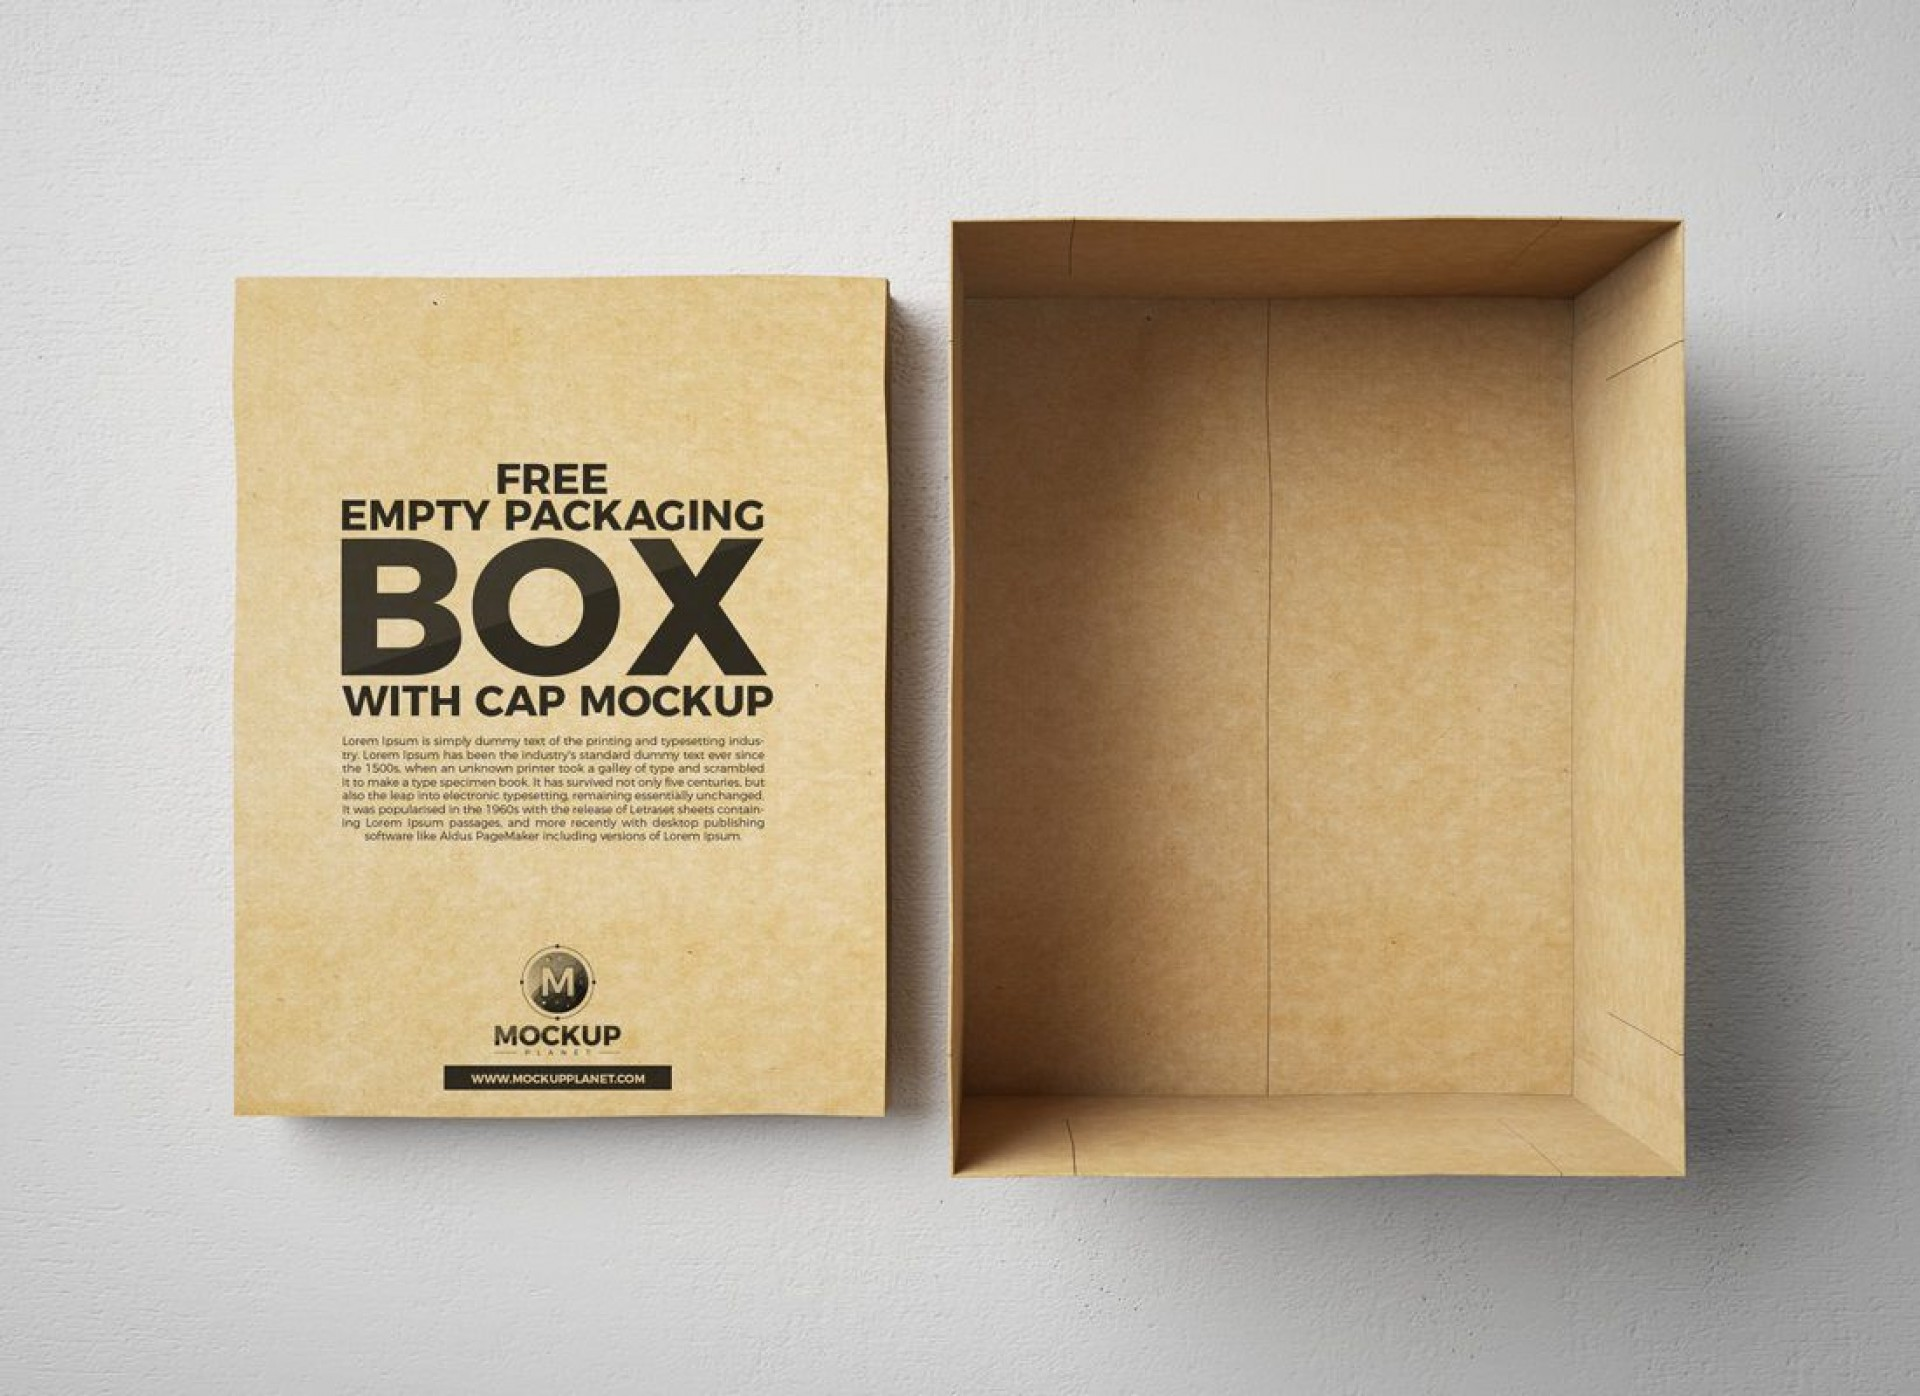 005 Stirring Box Design Template Free Image  Text Download Packaging1920